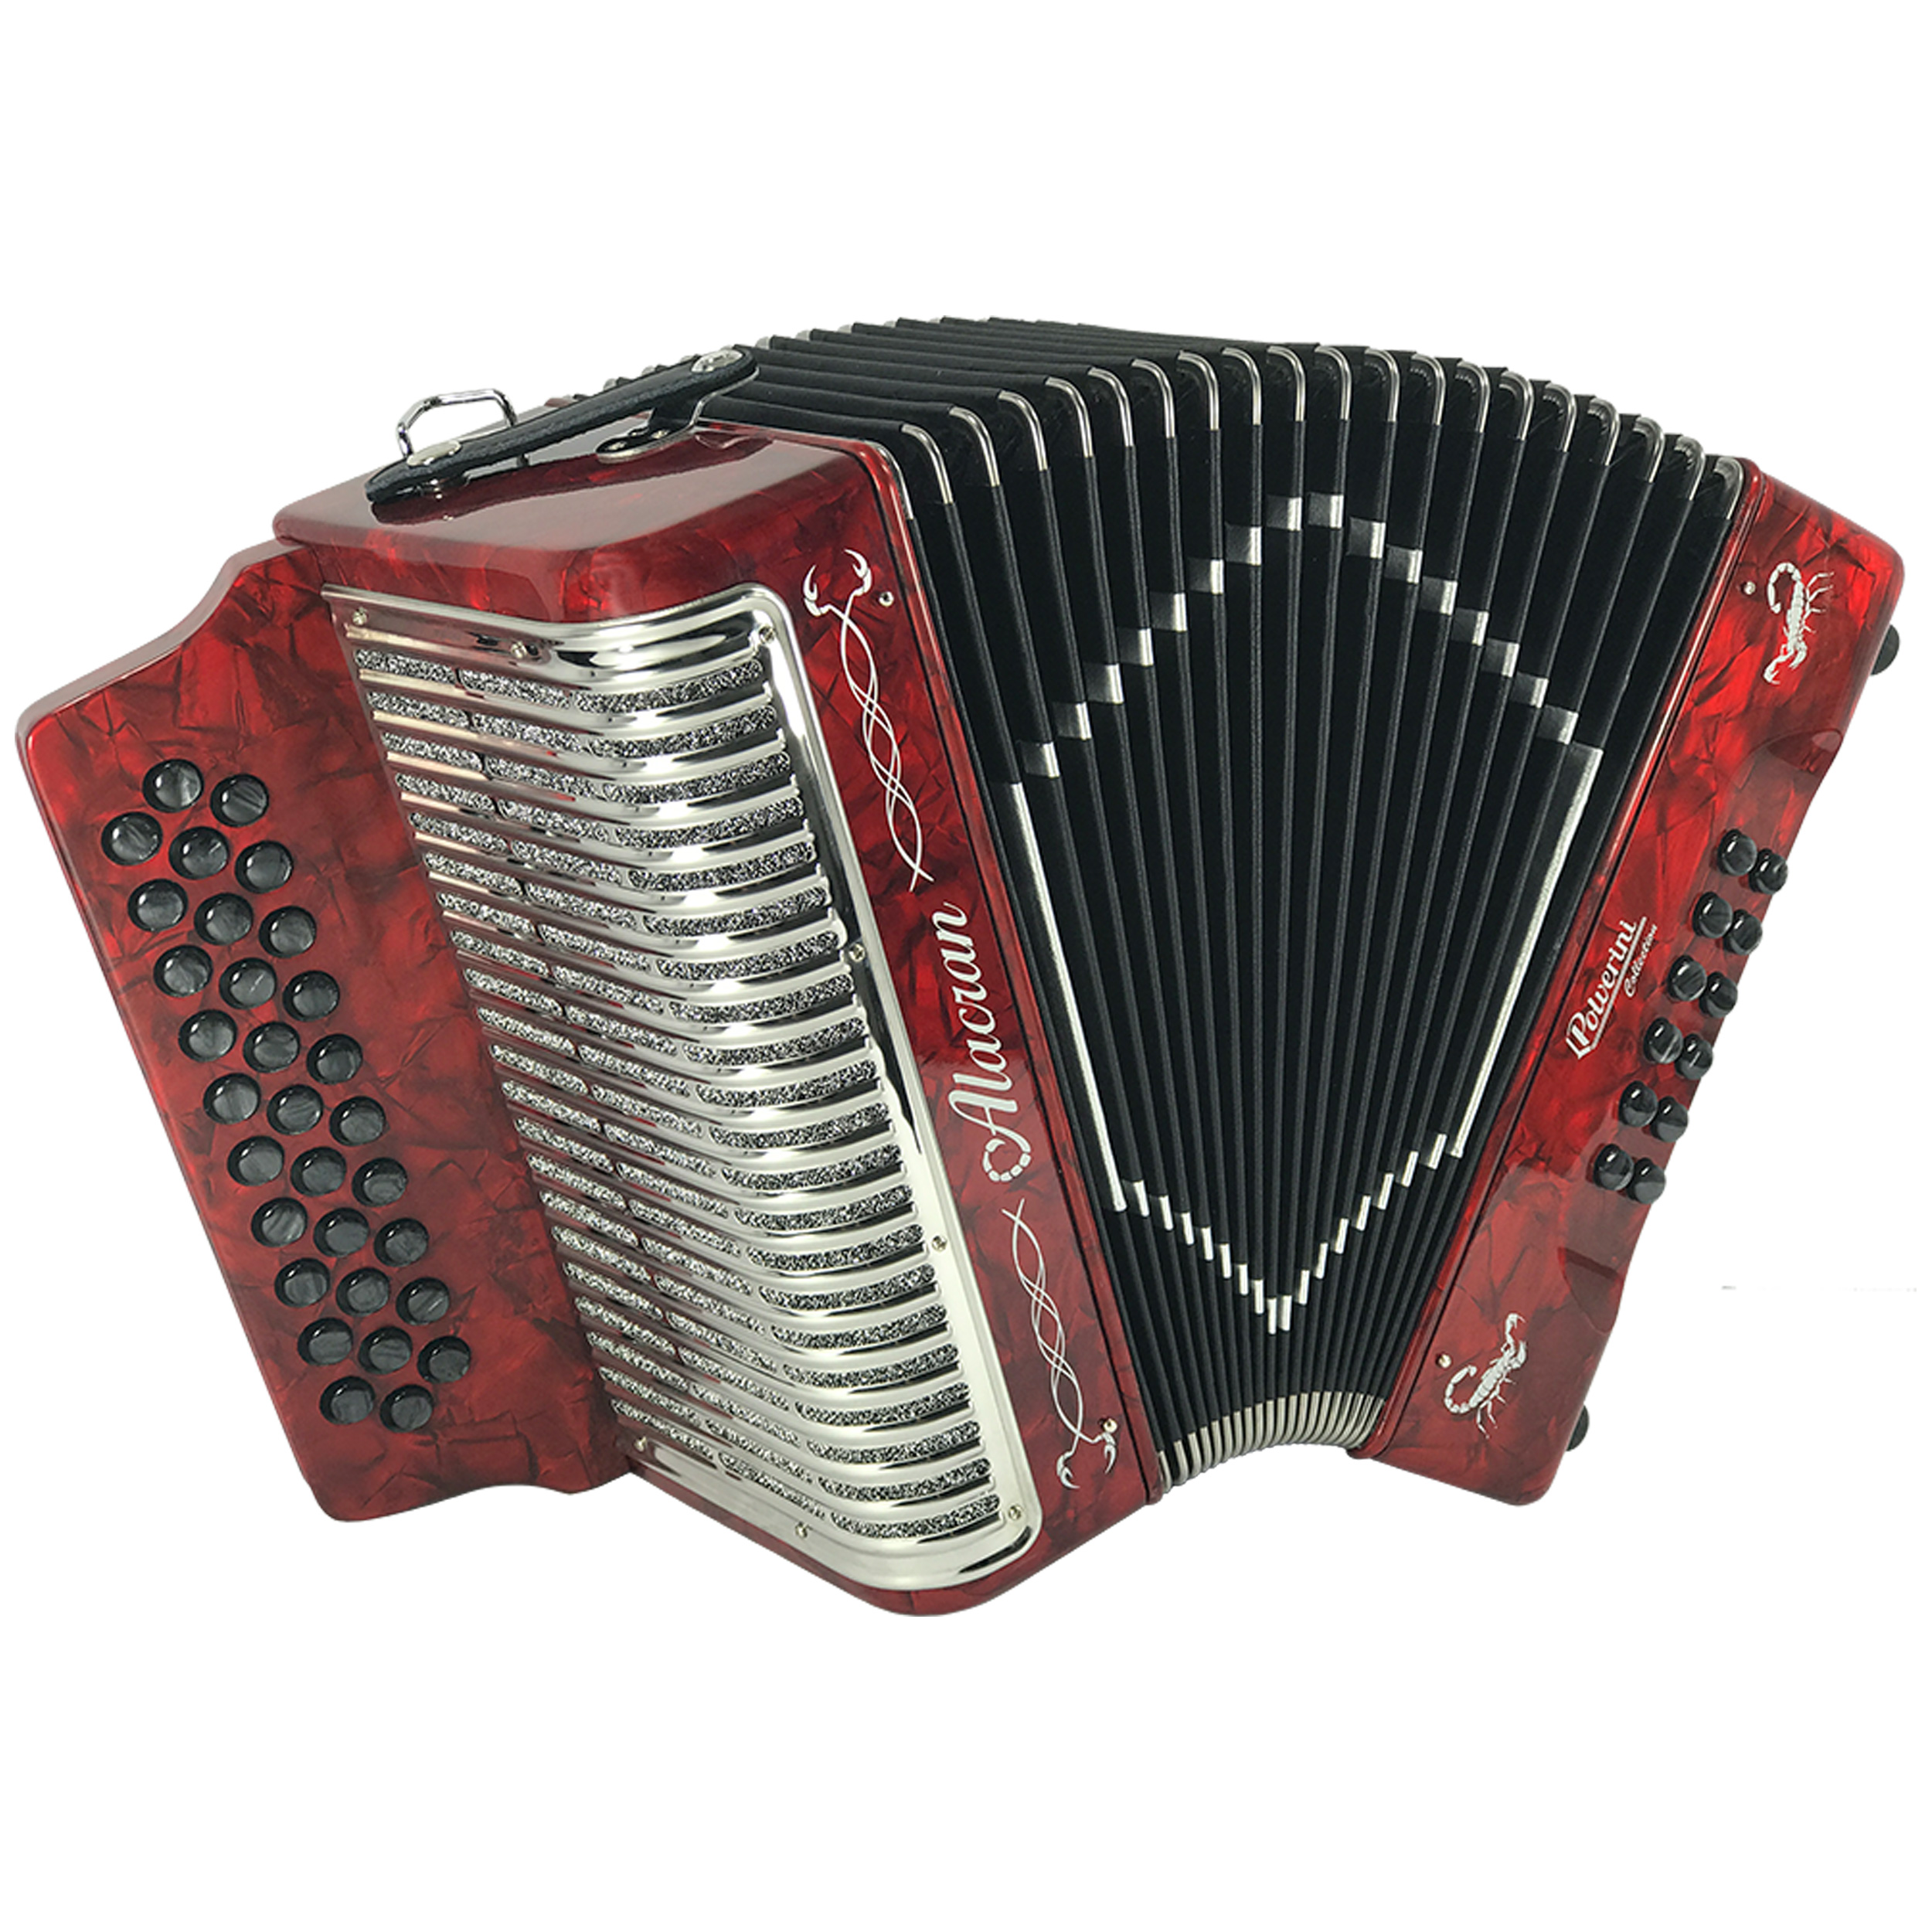 Alacran 31 Button 12 Bass Button Accordion FBE With Straps And Case, Red Pearl by Alacran